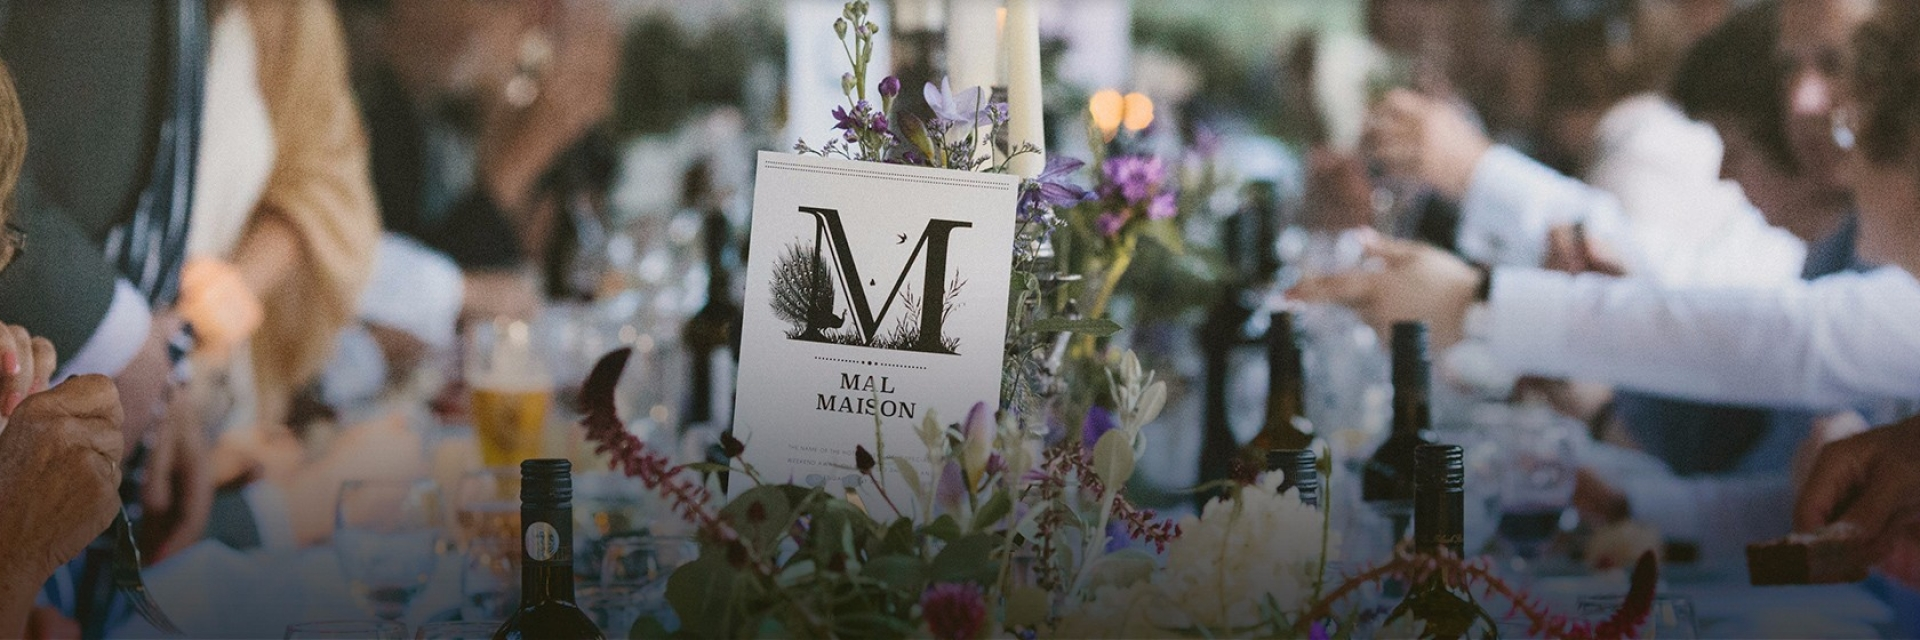 Somerset Wedding Venues - Maunsel House